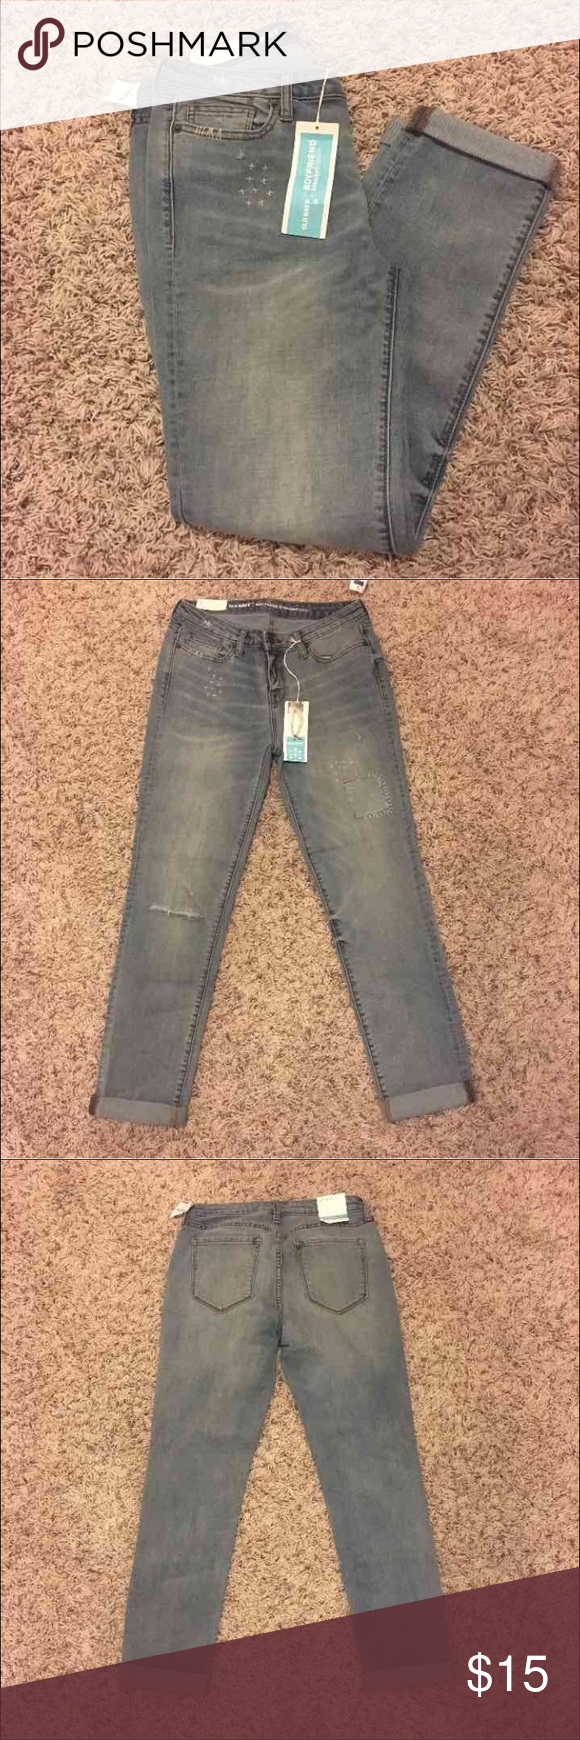 Old Navy Boyfriend Jeans New with tags size 4, very cute!! Old Navy Jeans Boyfriend